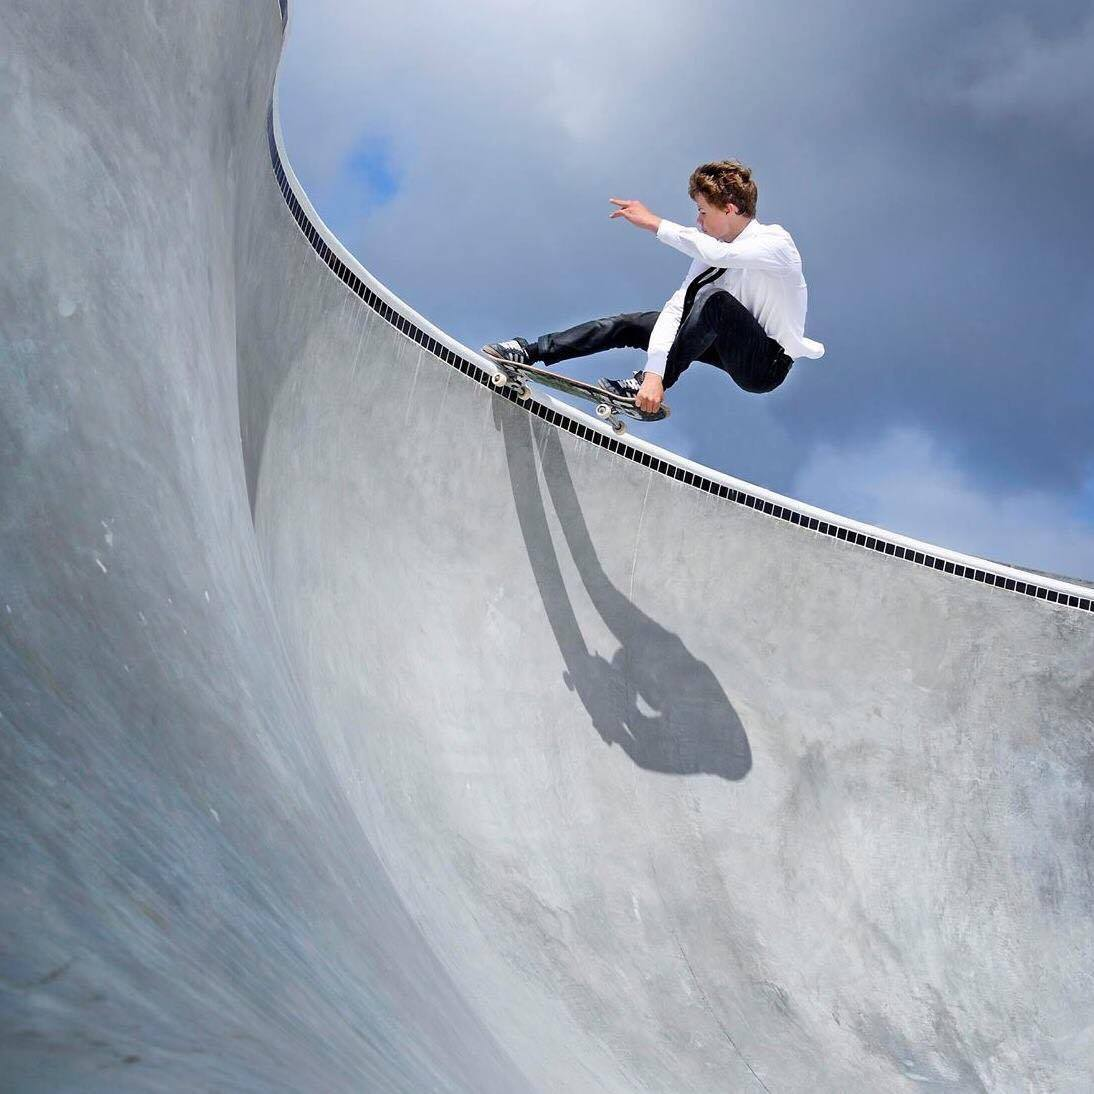 Crail, Photo: unknown, credits coming